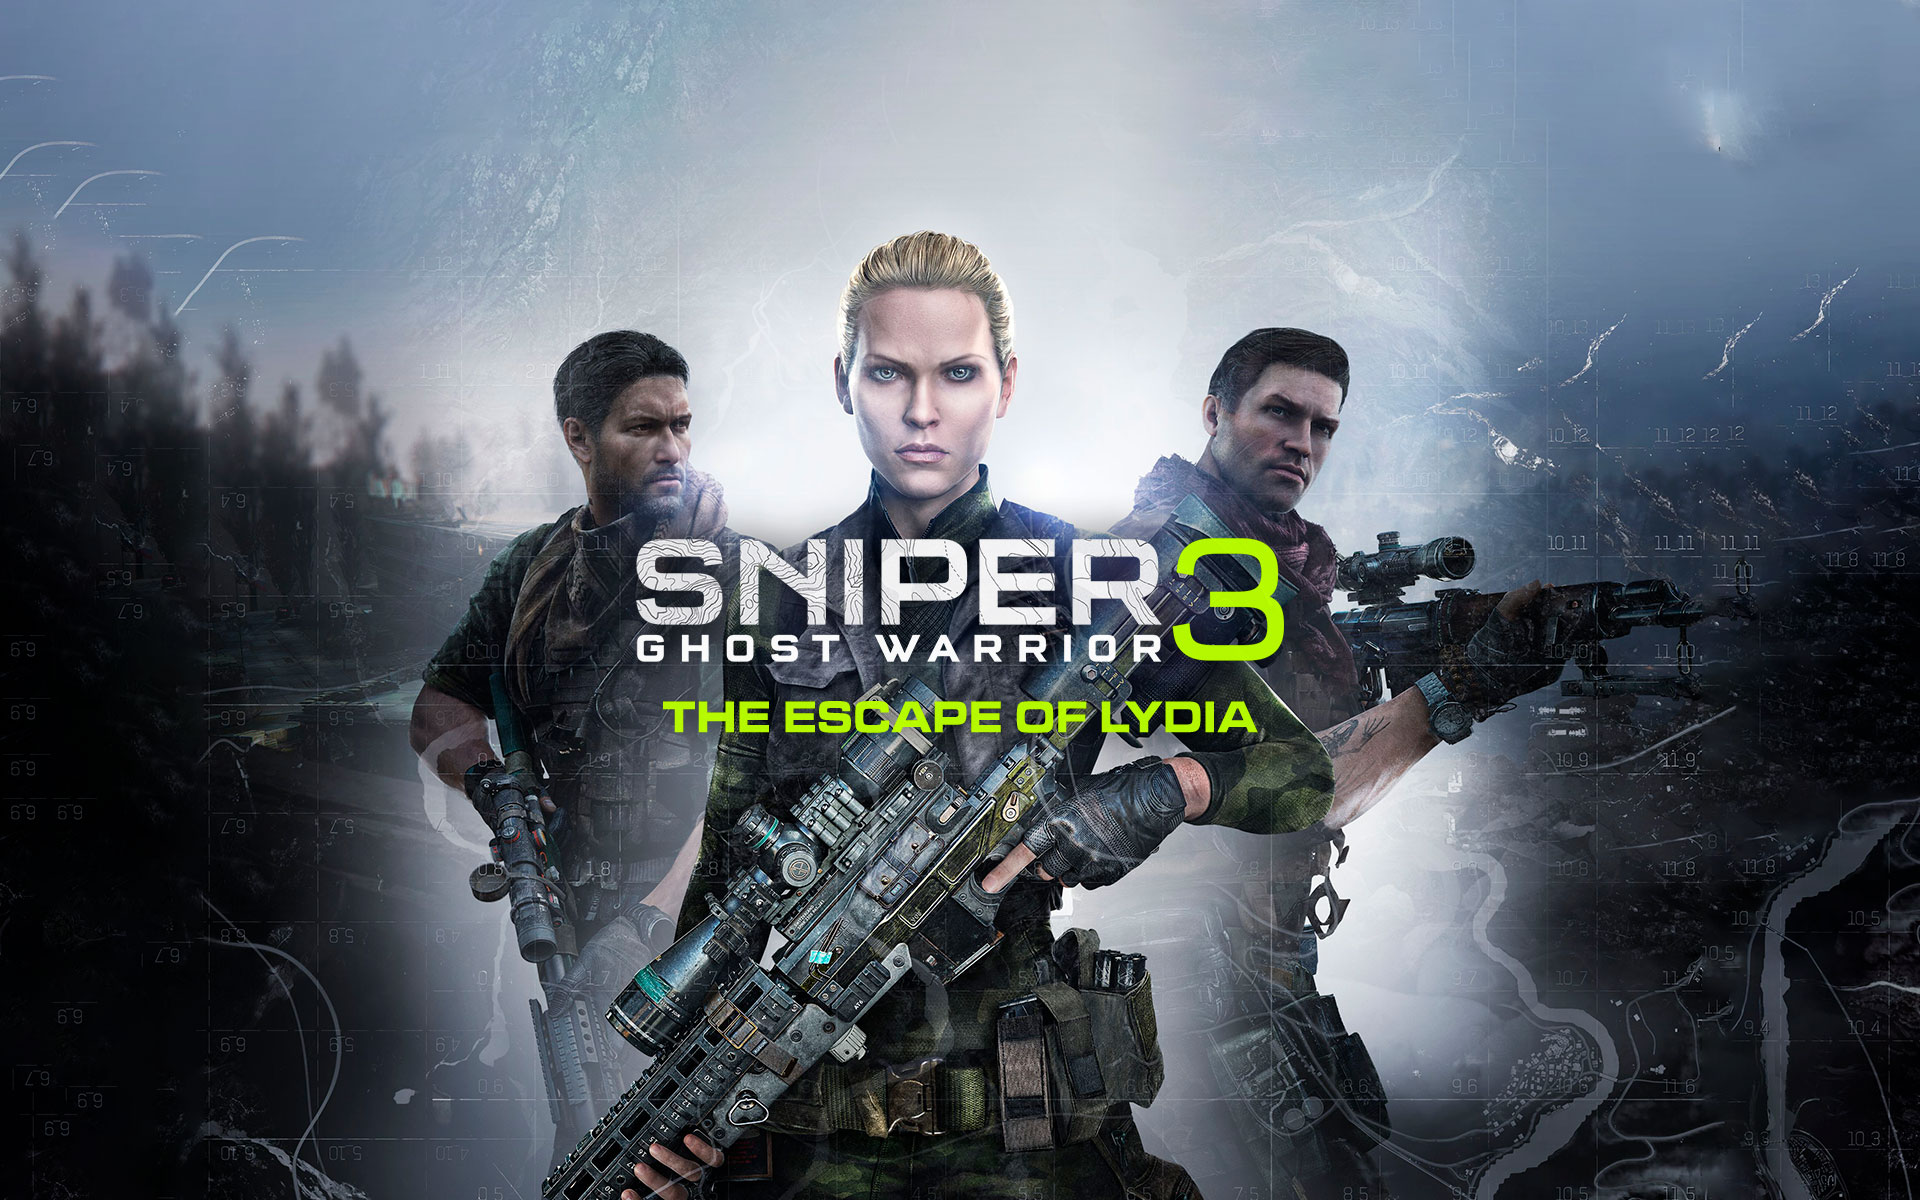 Sniper Ghost Warrior 3 - The Escape of Lydia (DLC)